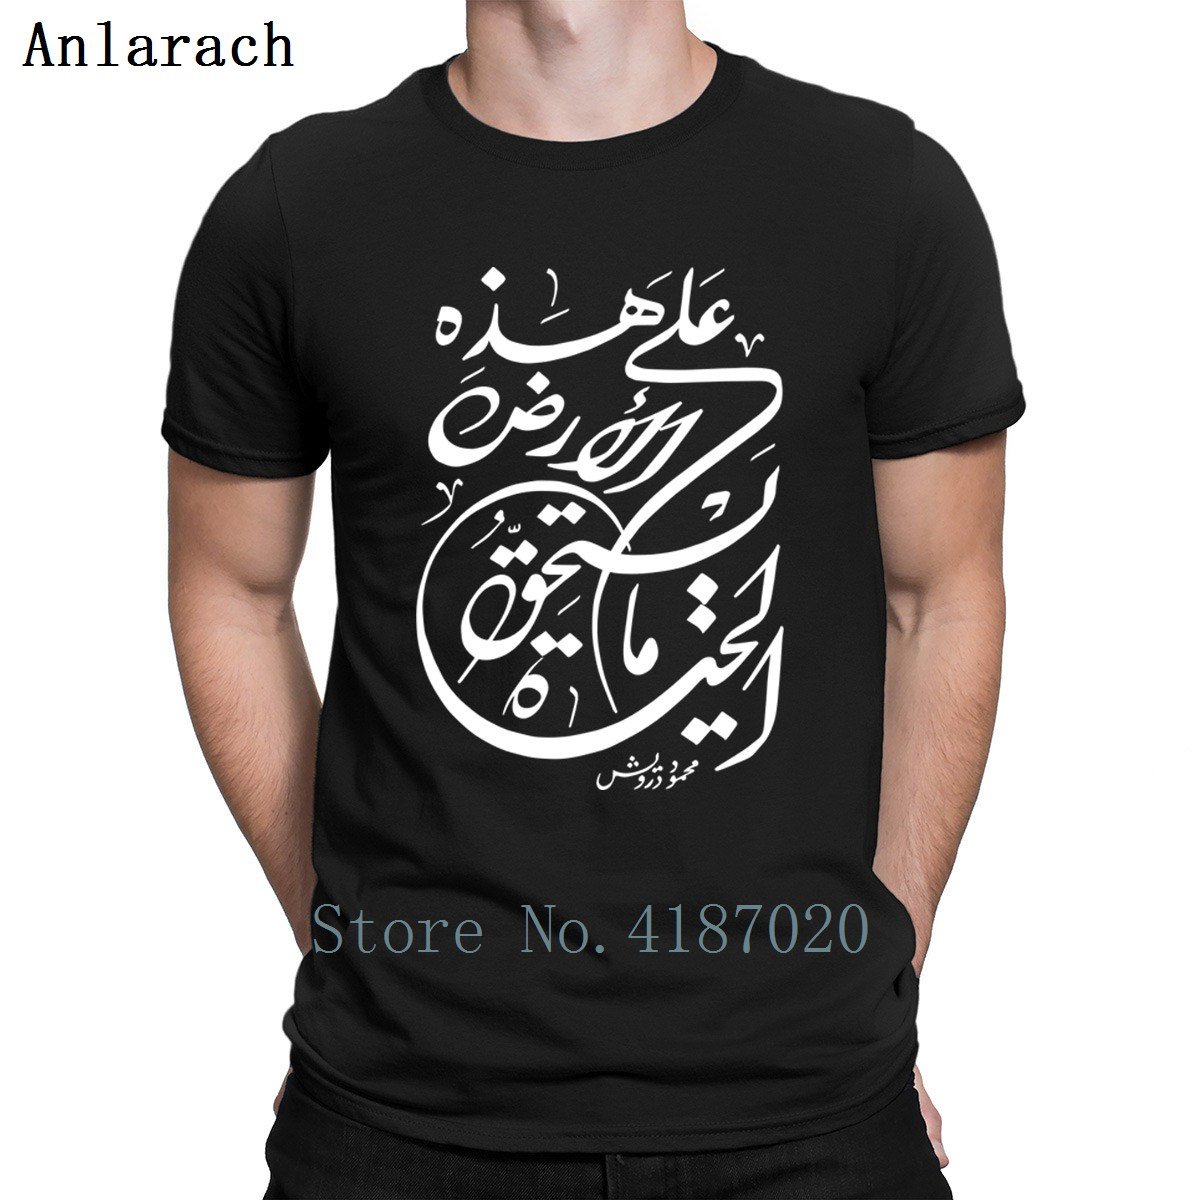 Arabic Calligraphy T-Shirt Clothes Funny Casual Top Quality Custom T Shirt For Men Crew Neck Family Fun Spring Autumn